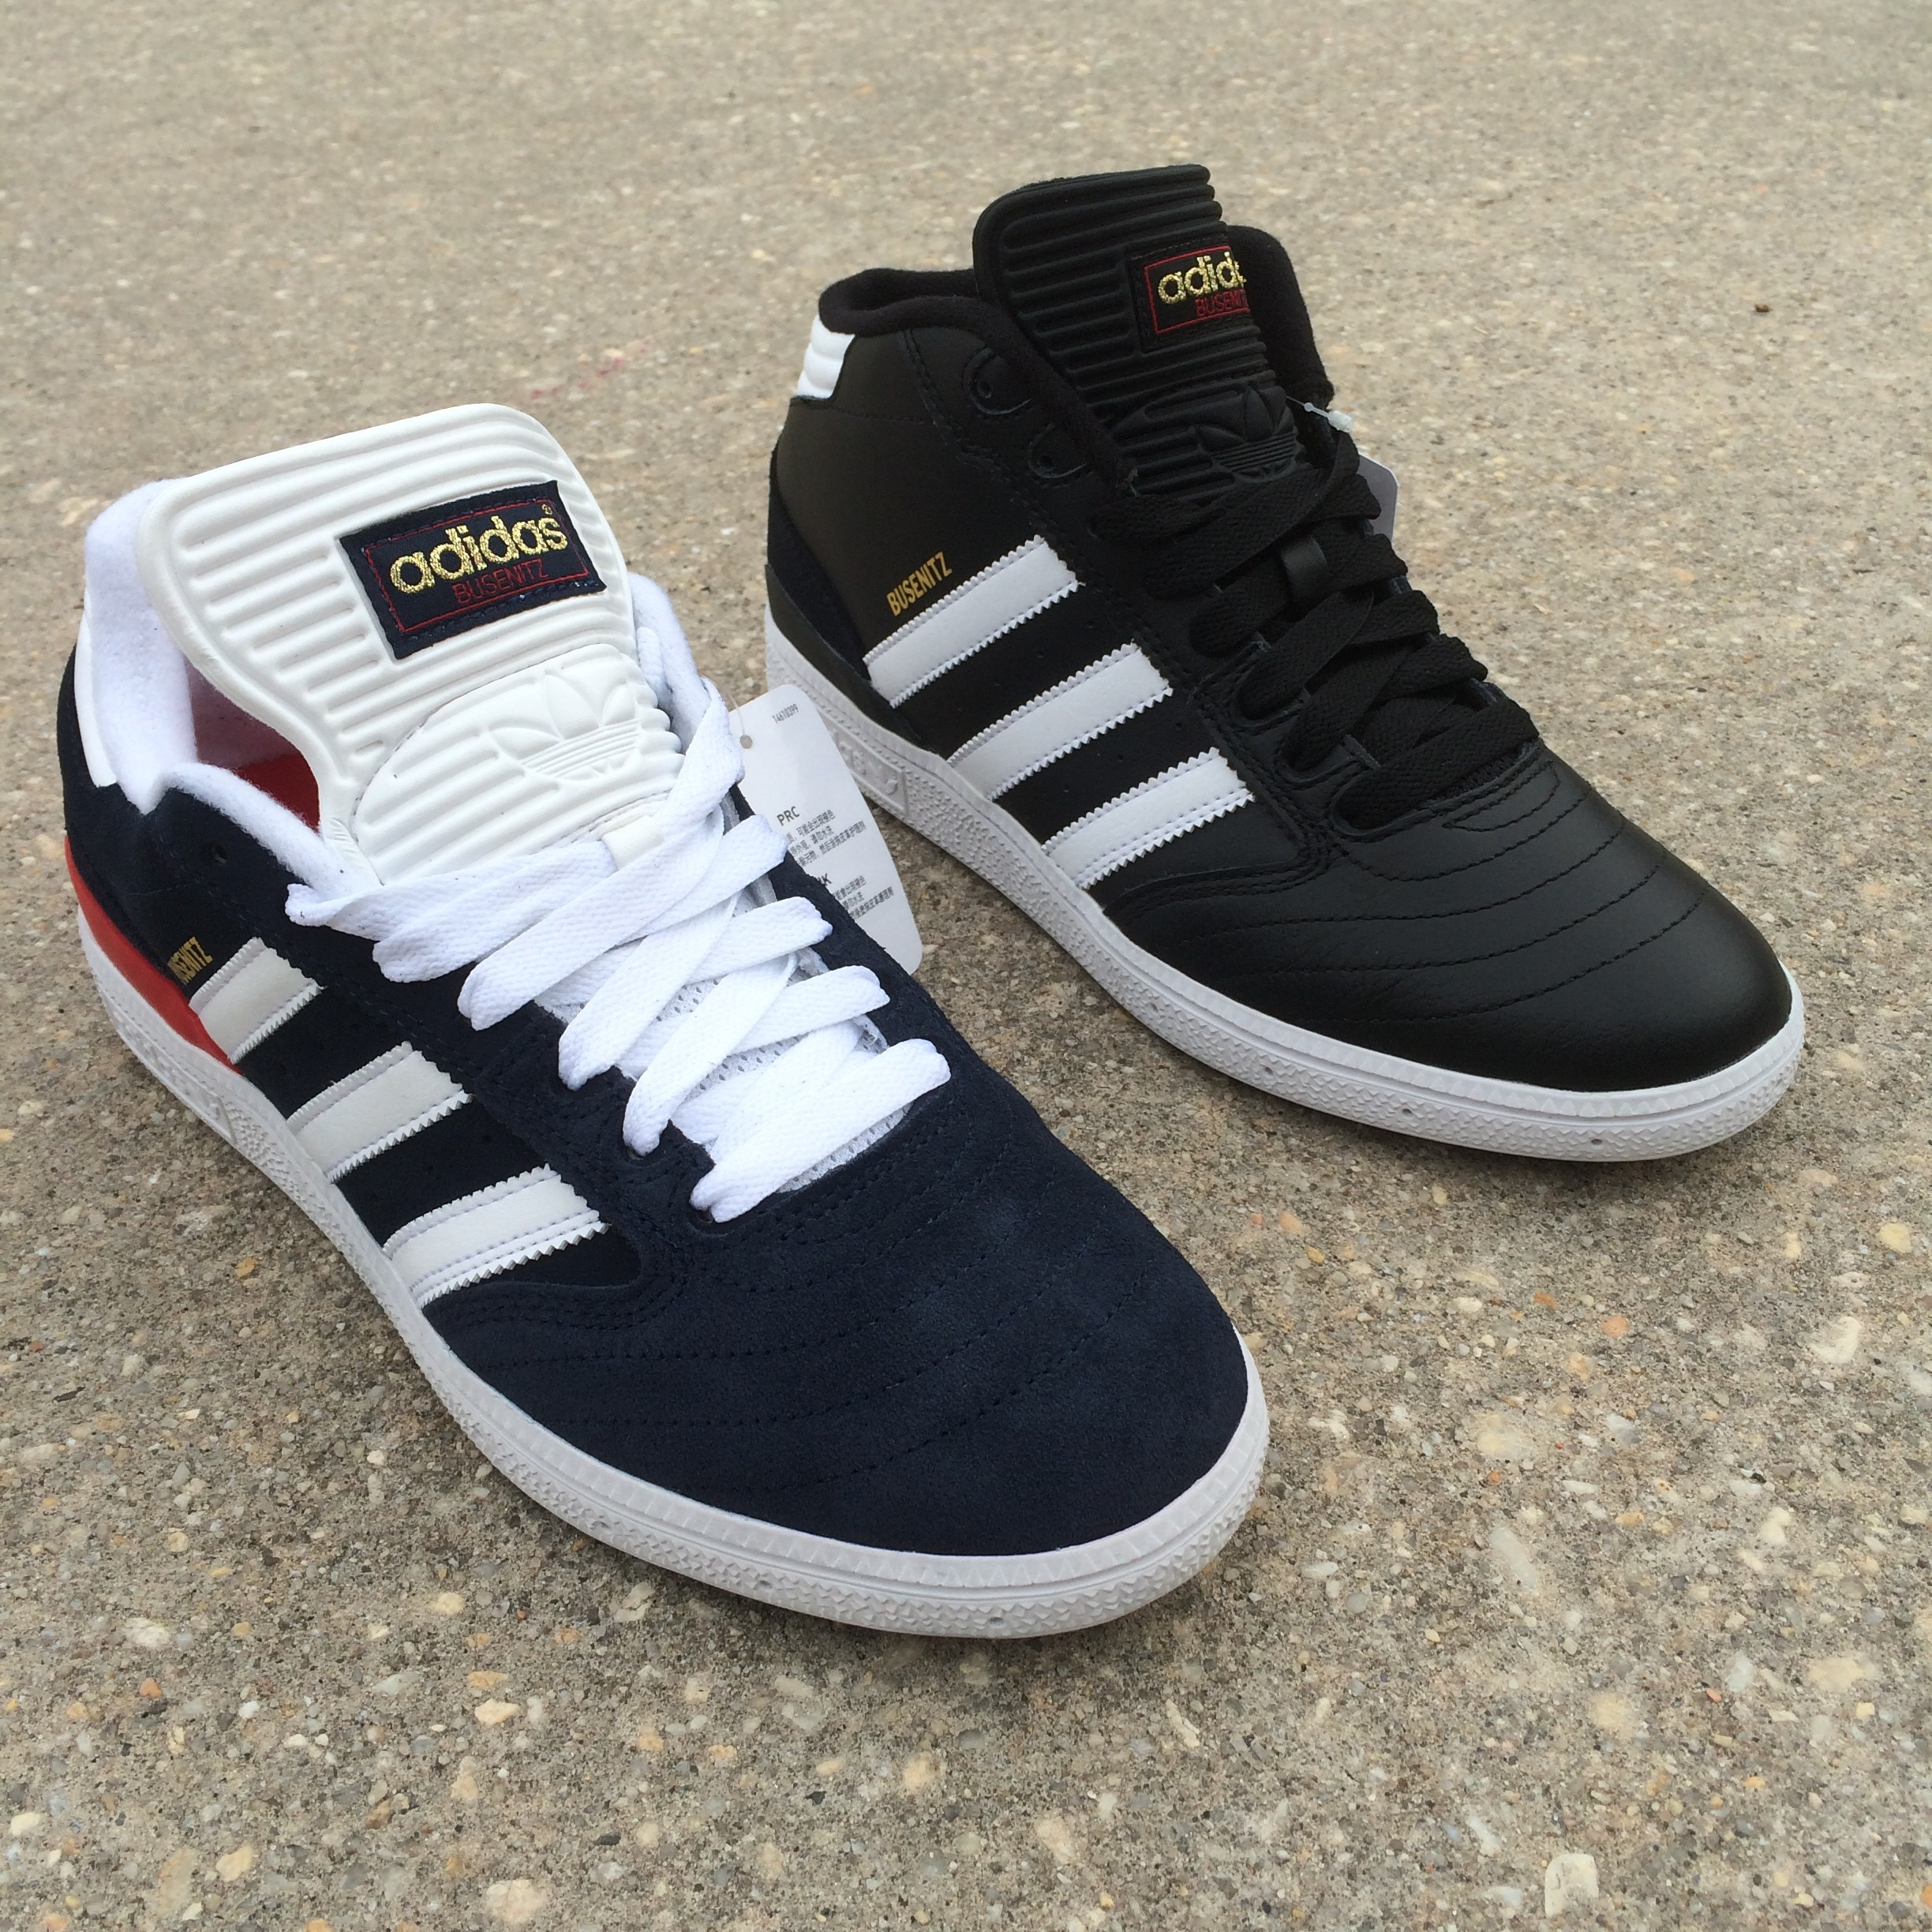 Adidas Busenitz Pro Shoes Collegiate Navy Blue White Red Skate